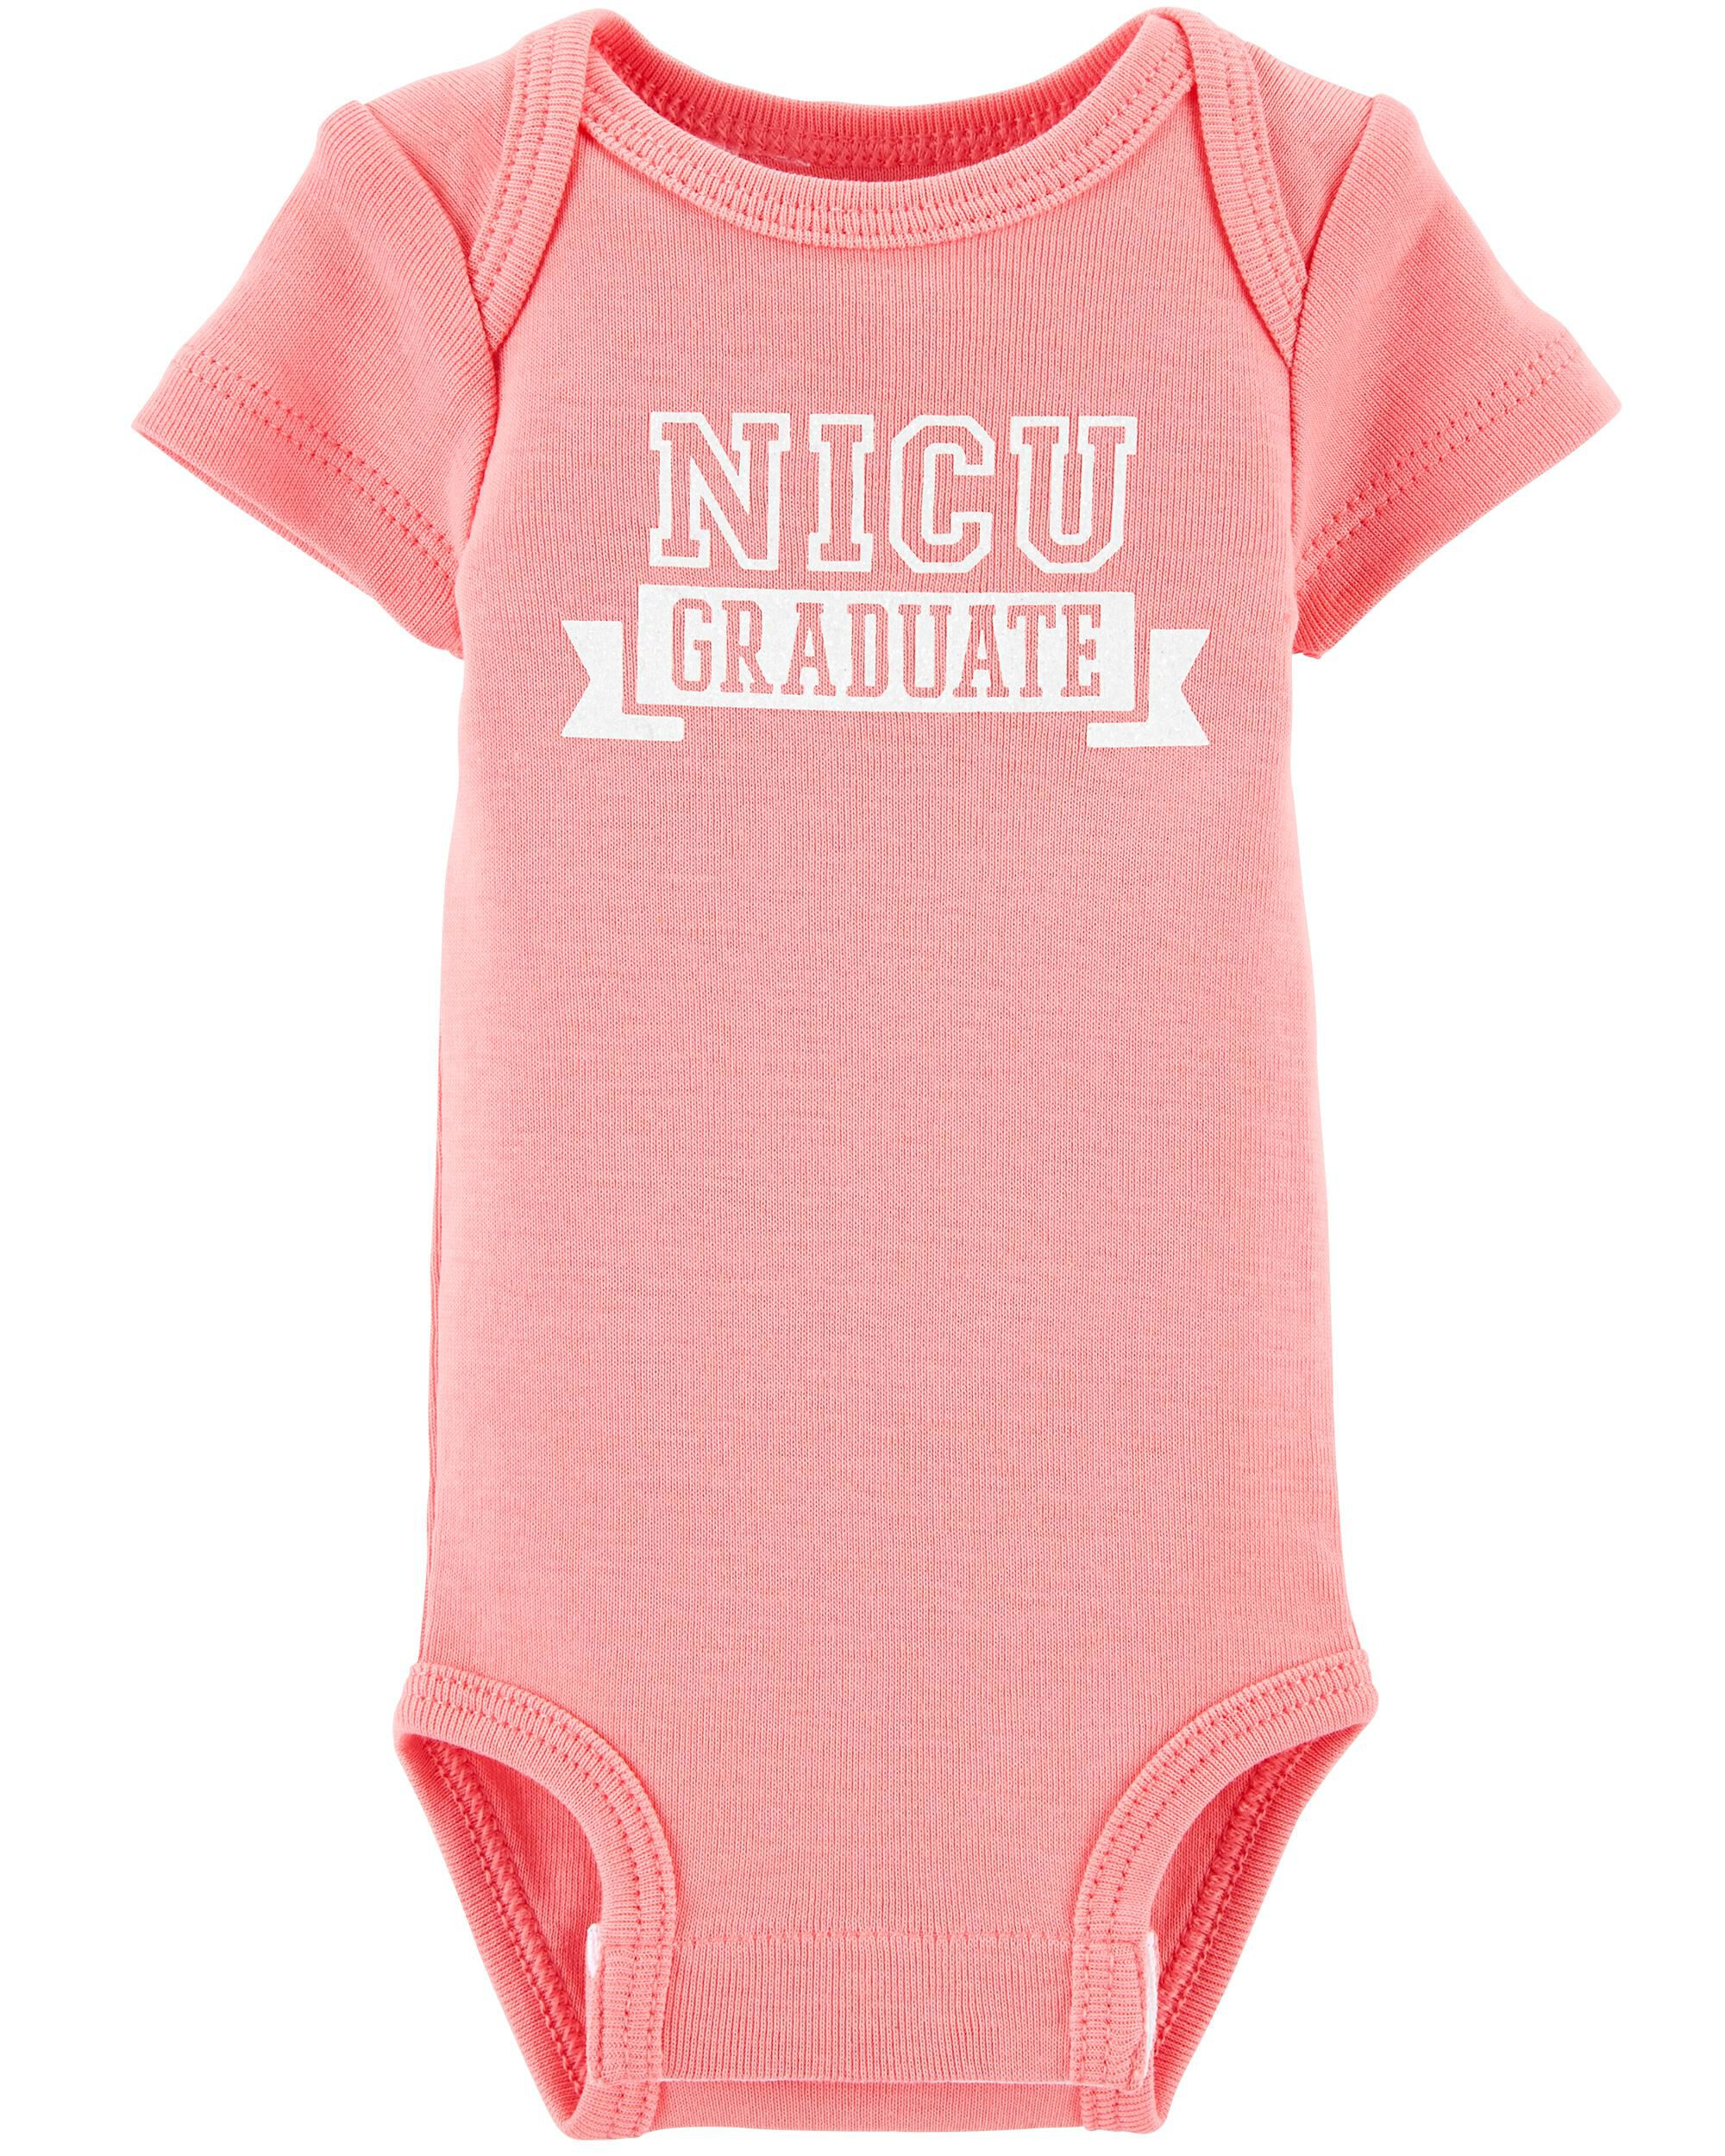 Cute Baby Girl clothes Hospital Premature Baby Graduated From NICU Onesie